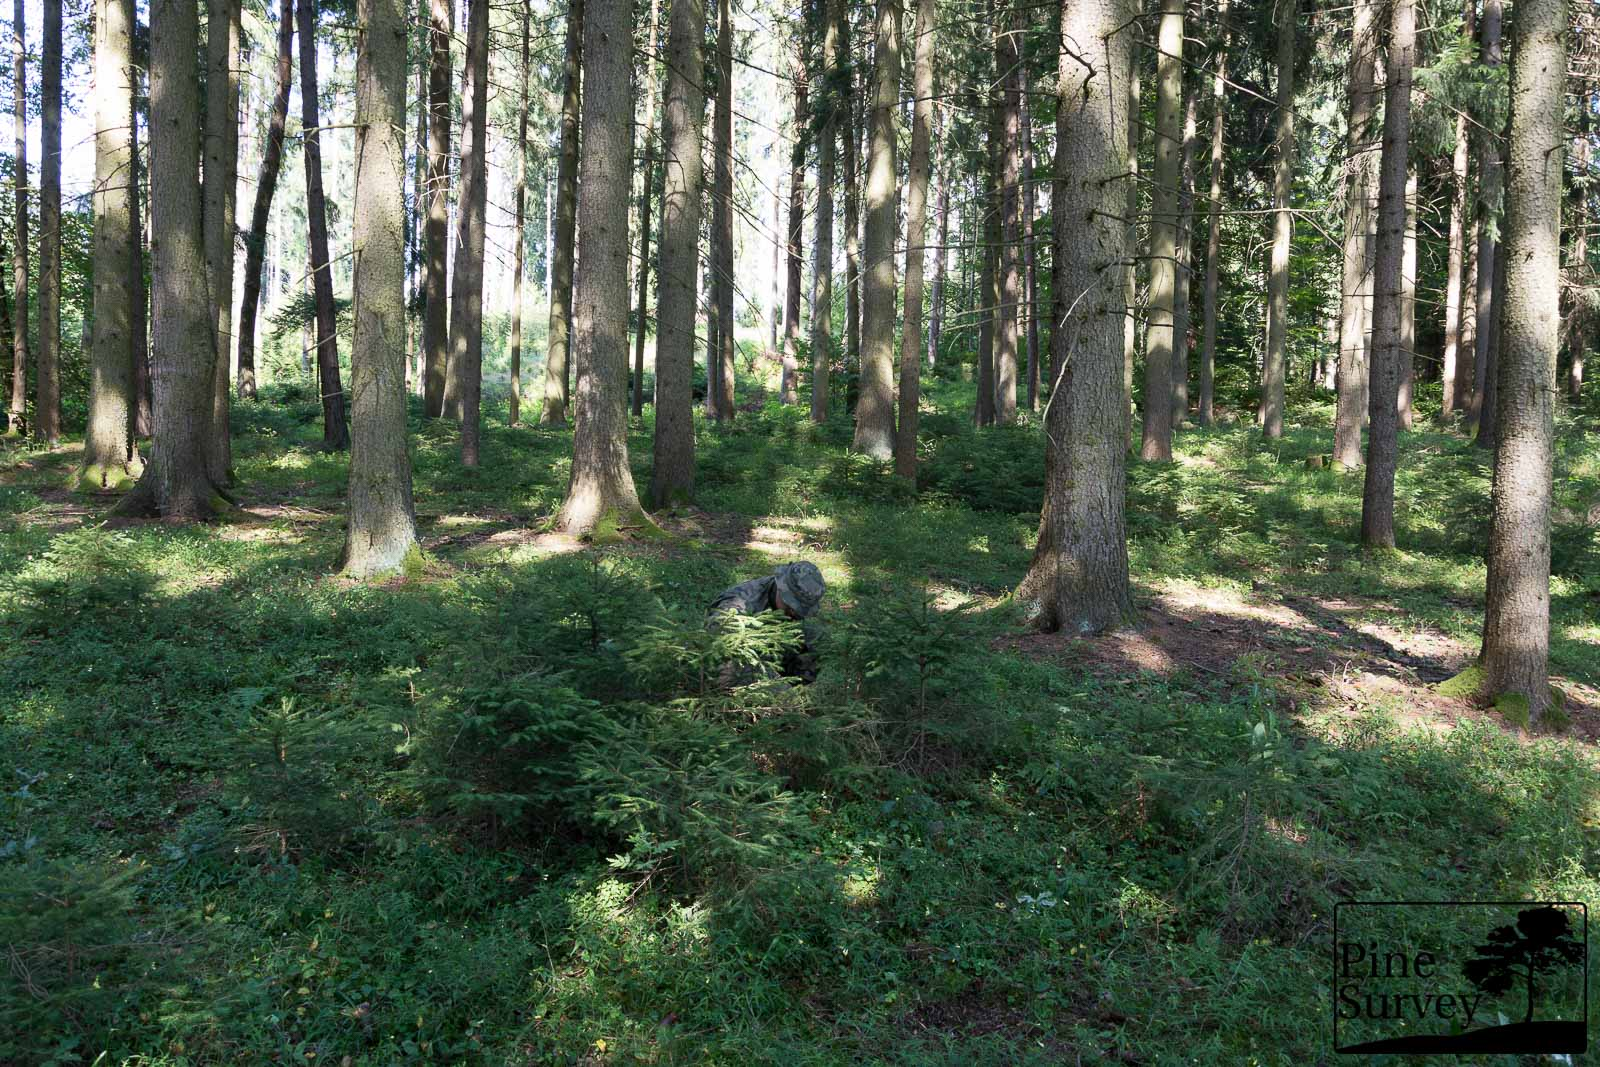 PL Woodland in the kneeling position - wide angle